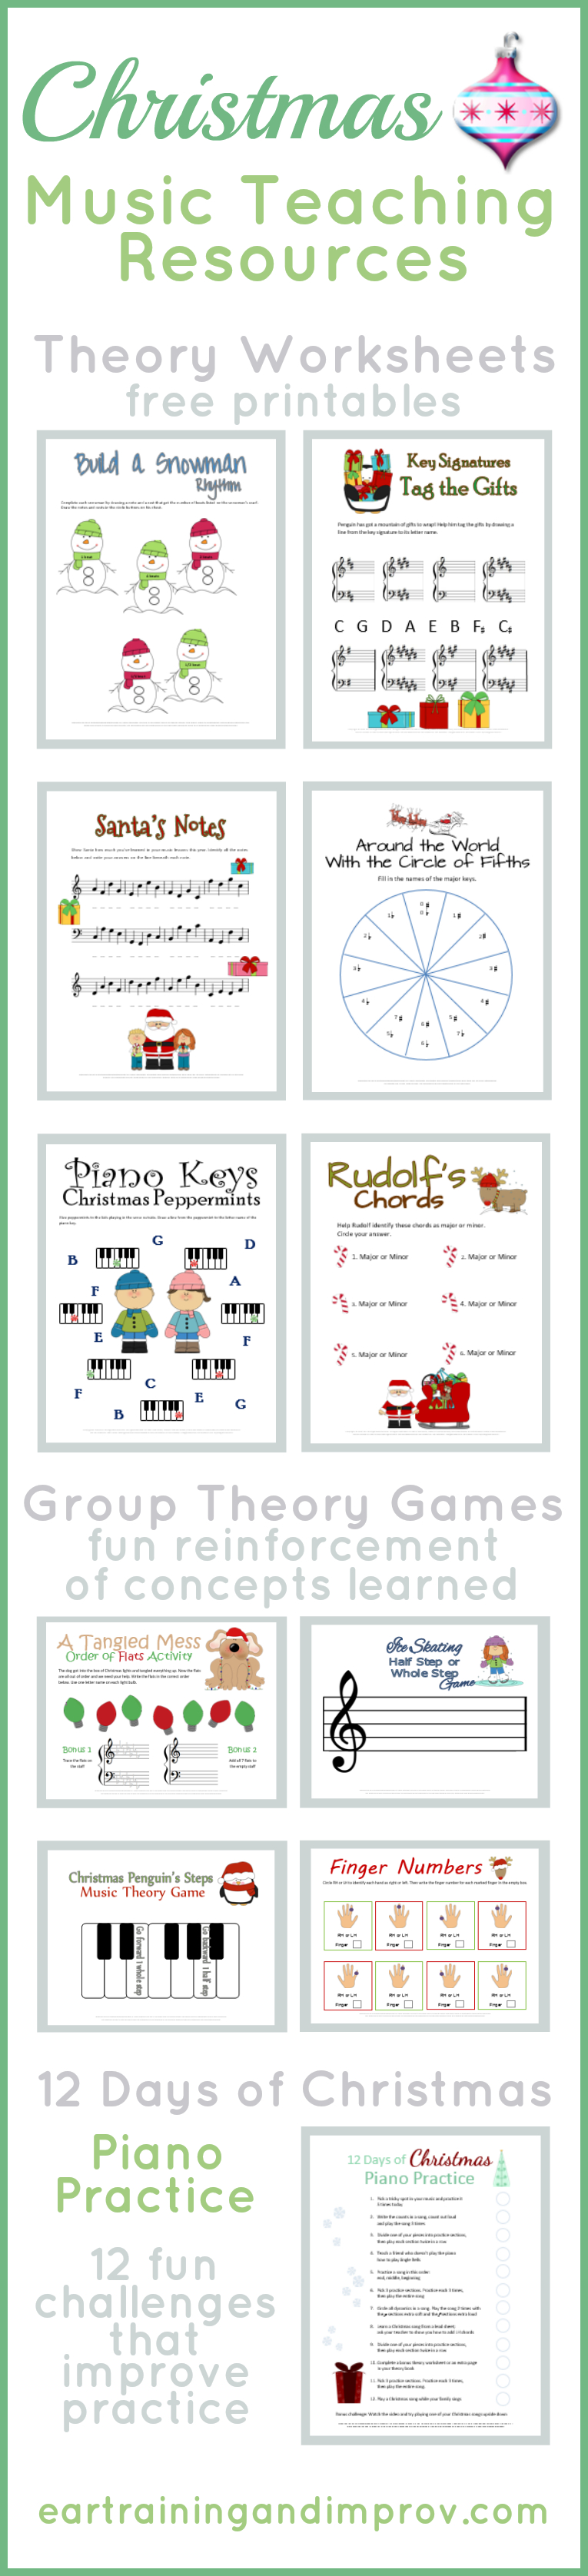 Christmas Music Theory Worksheets - 20+ Free Printables - Beginner Piano Worksheets Printable Free